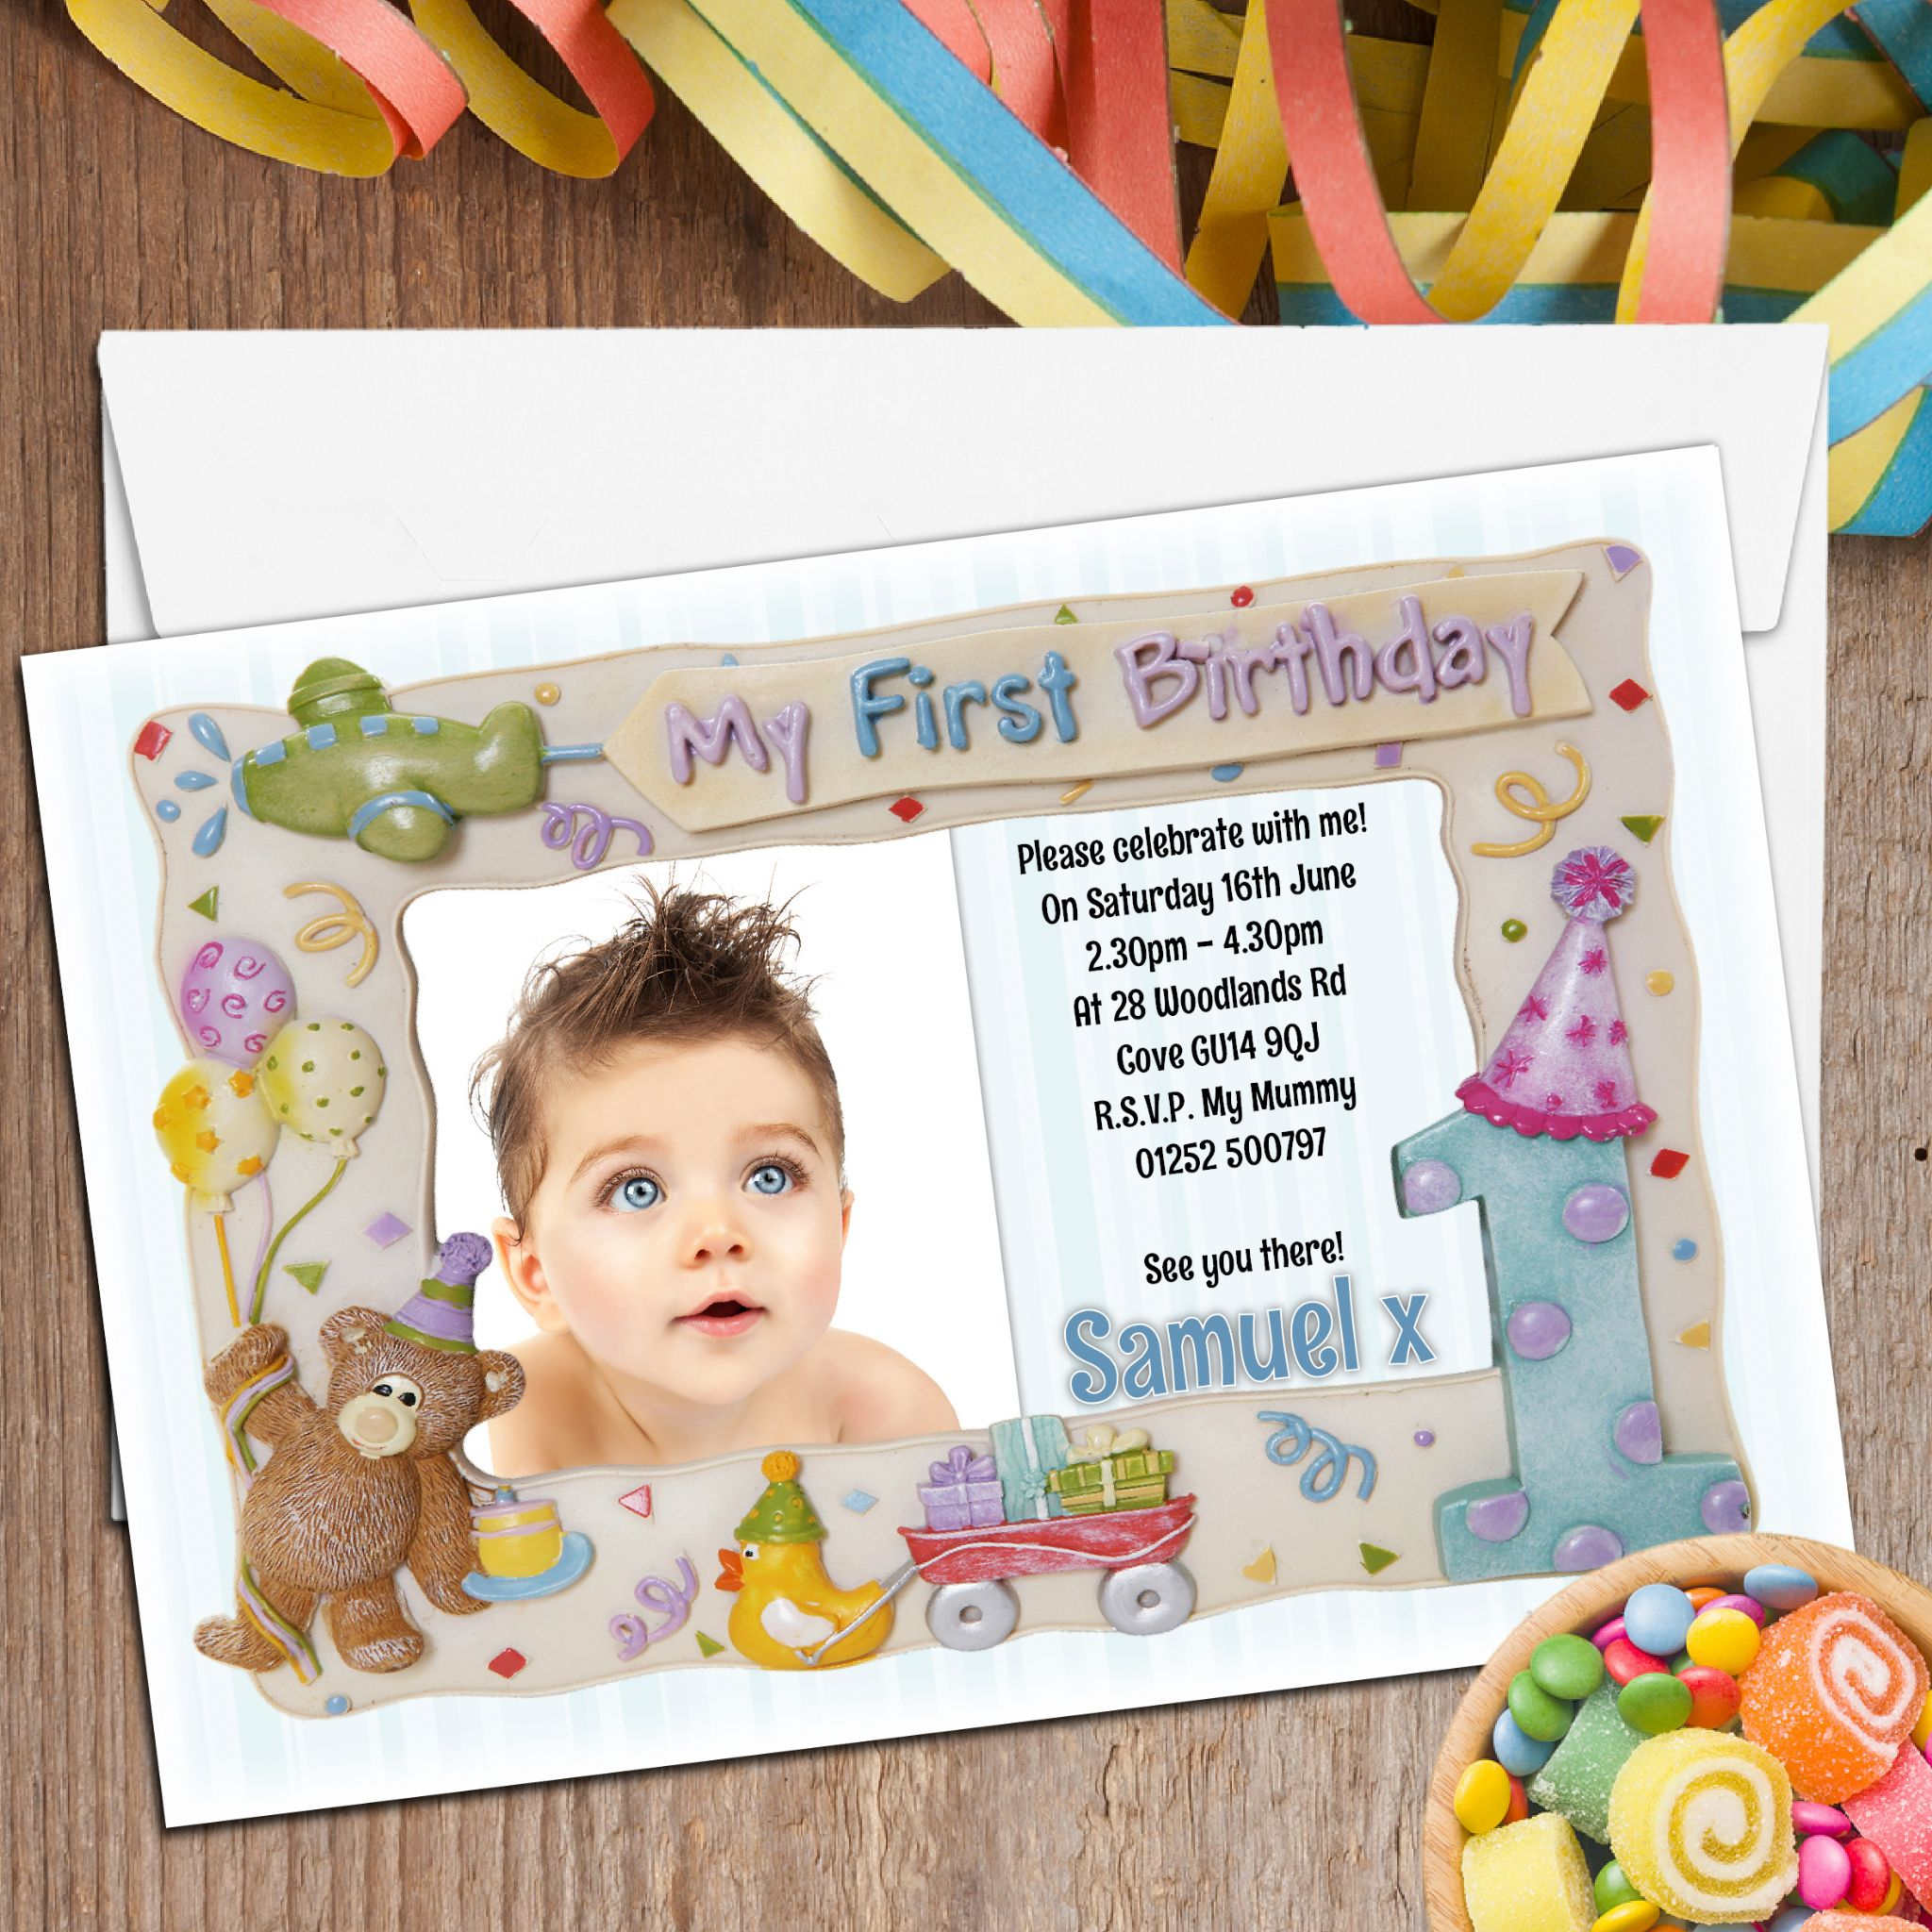 my first birthday picture frame ; 10-personalised-first-1st-birthday-party-frame-photo-invitations-n2-196-p